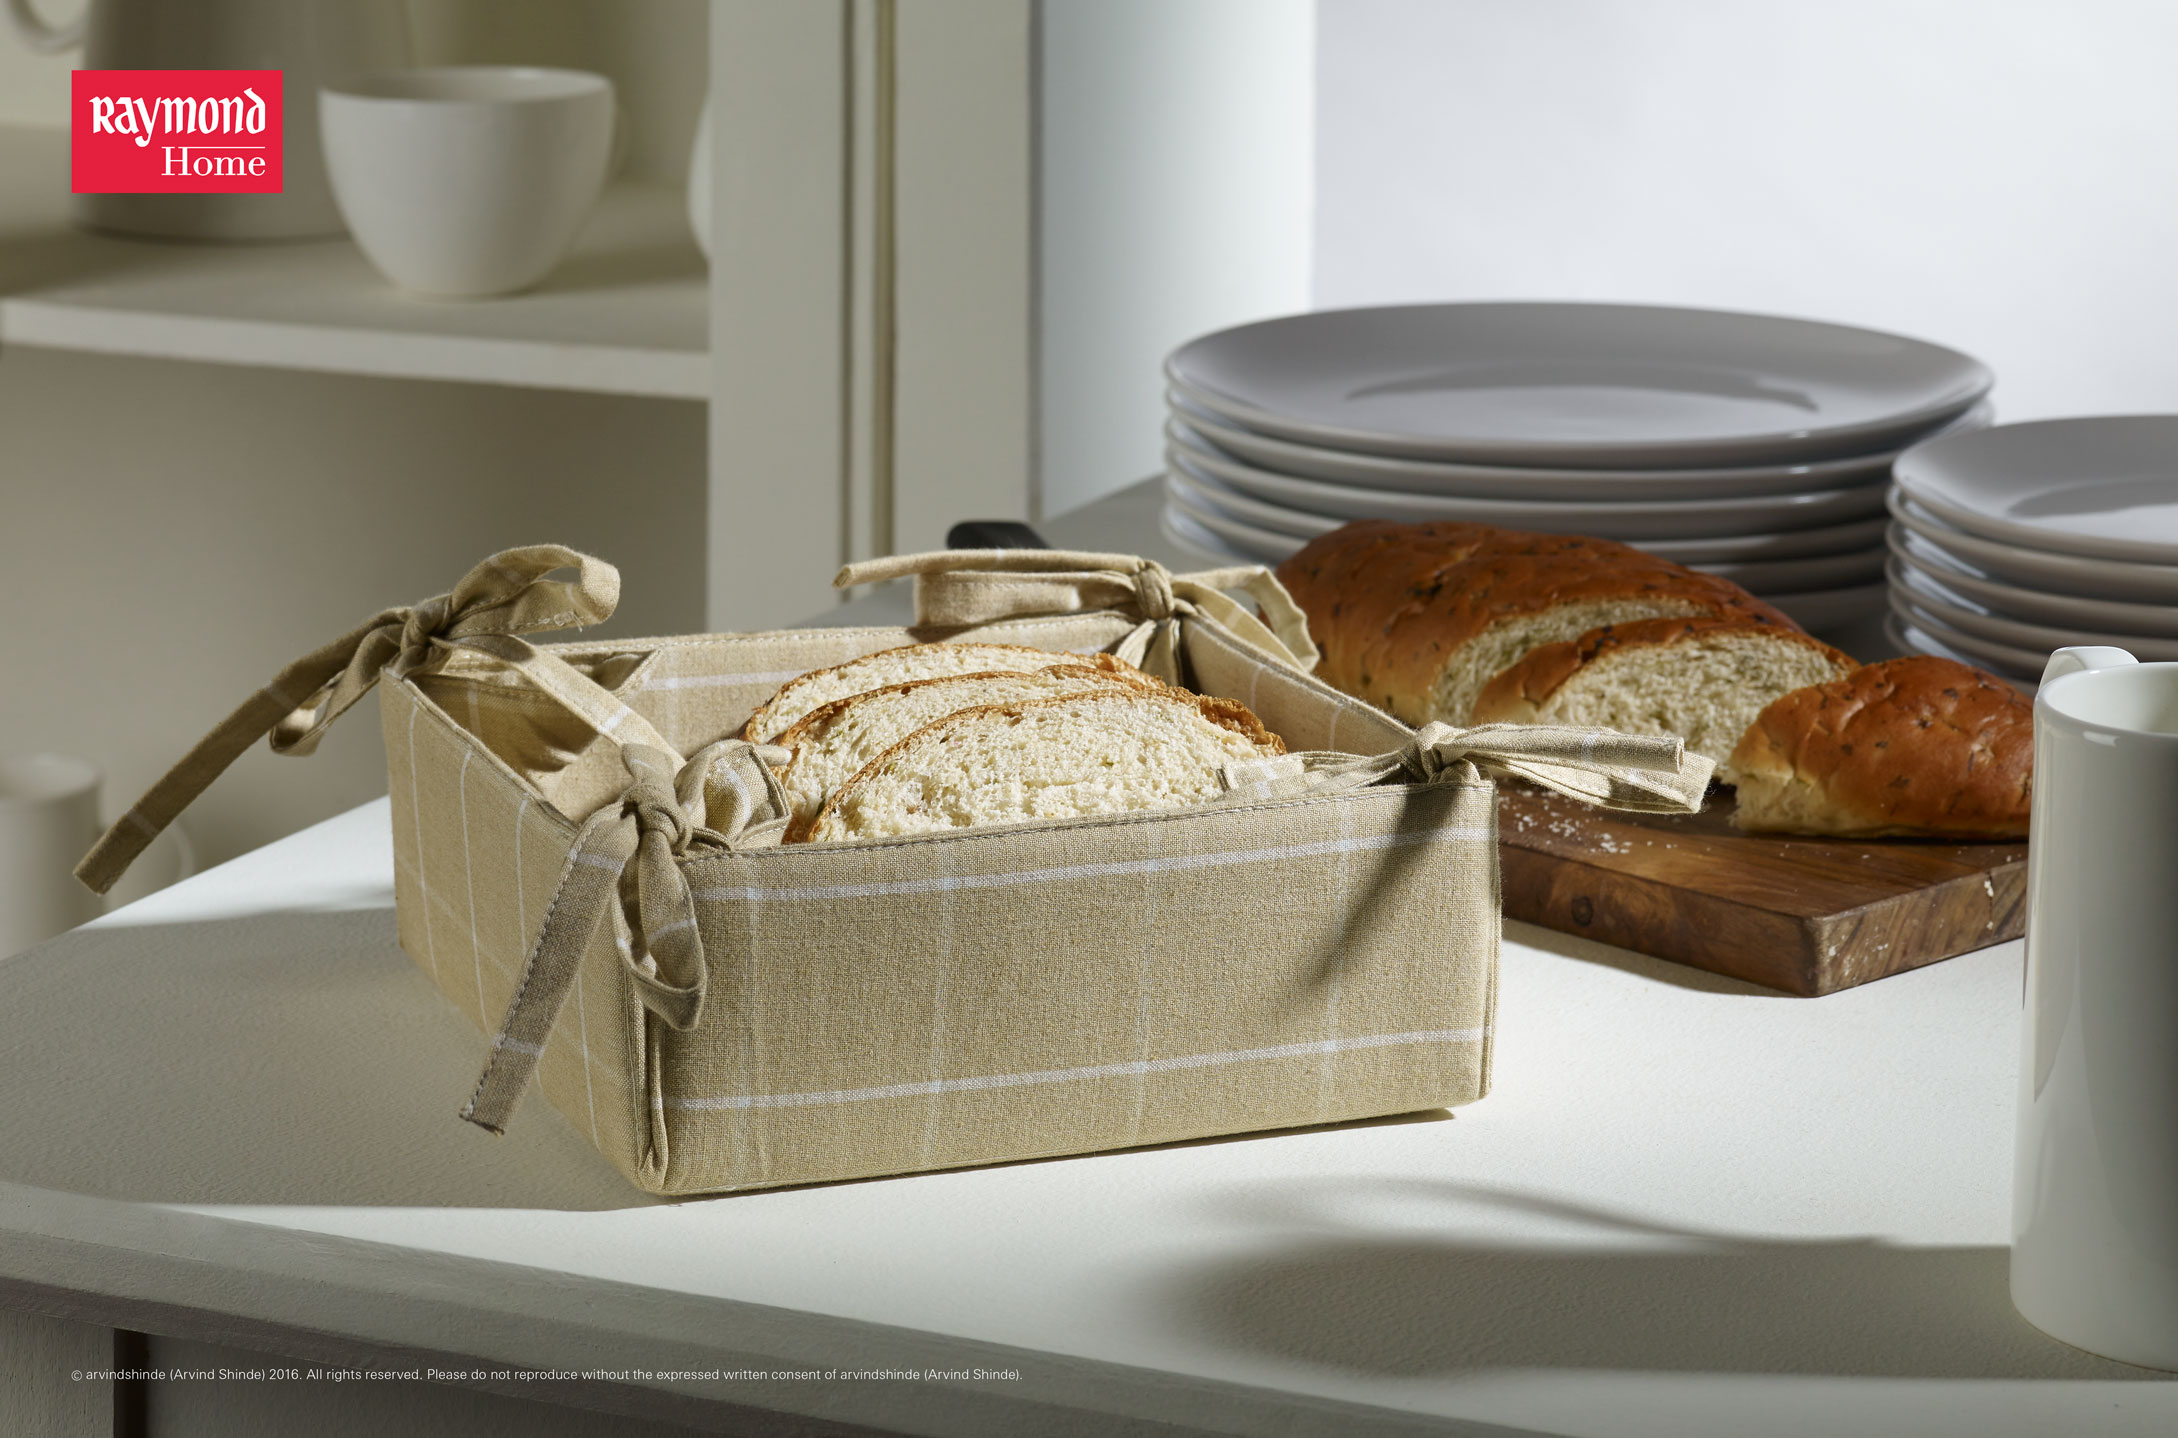 Raymond-Home-kitchen-linen-Bread-Basket